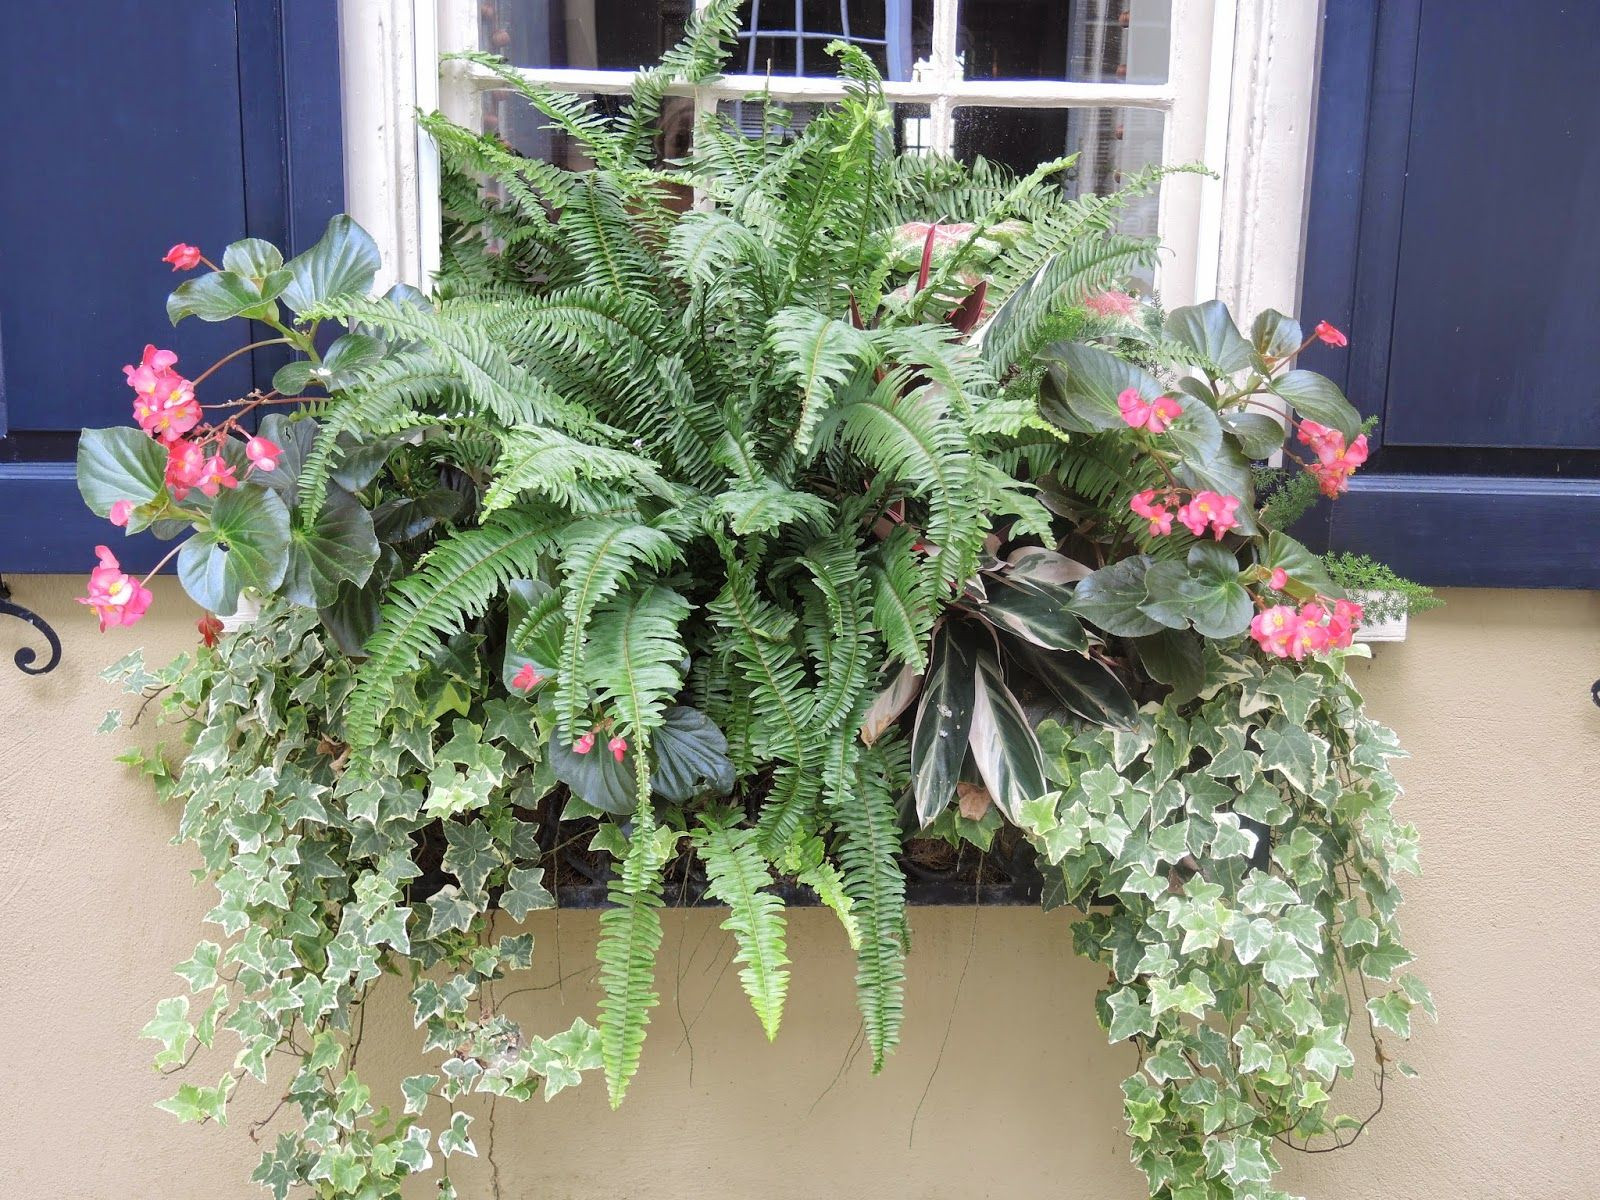 shade window box begonias ivy ferns Flower window box planter for shade Pink and green for southern warm climate window box easy planting